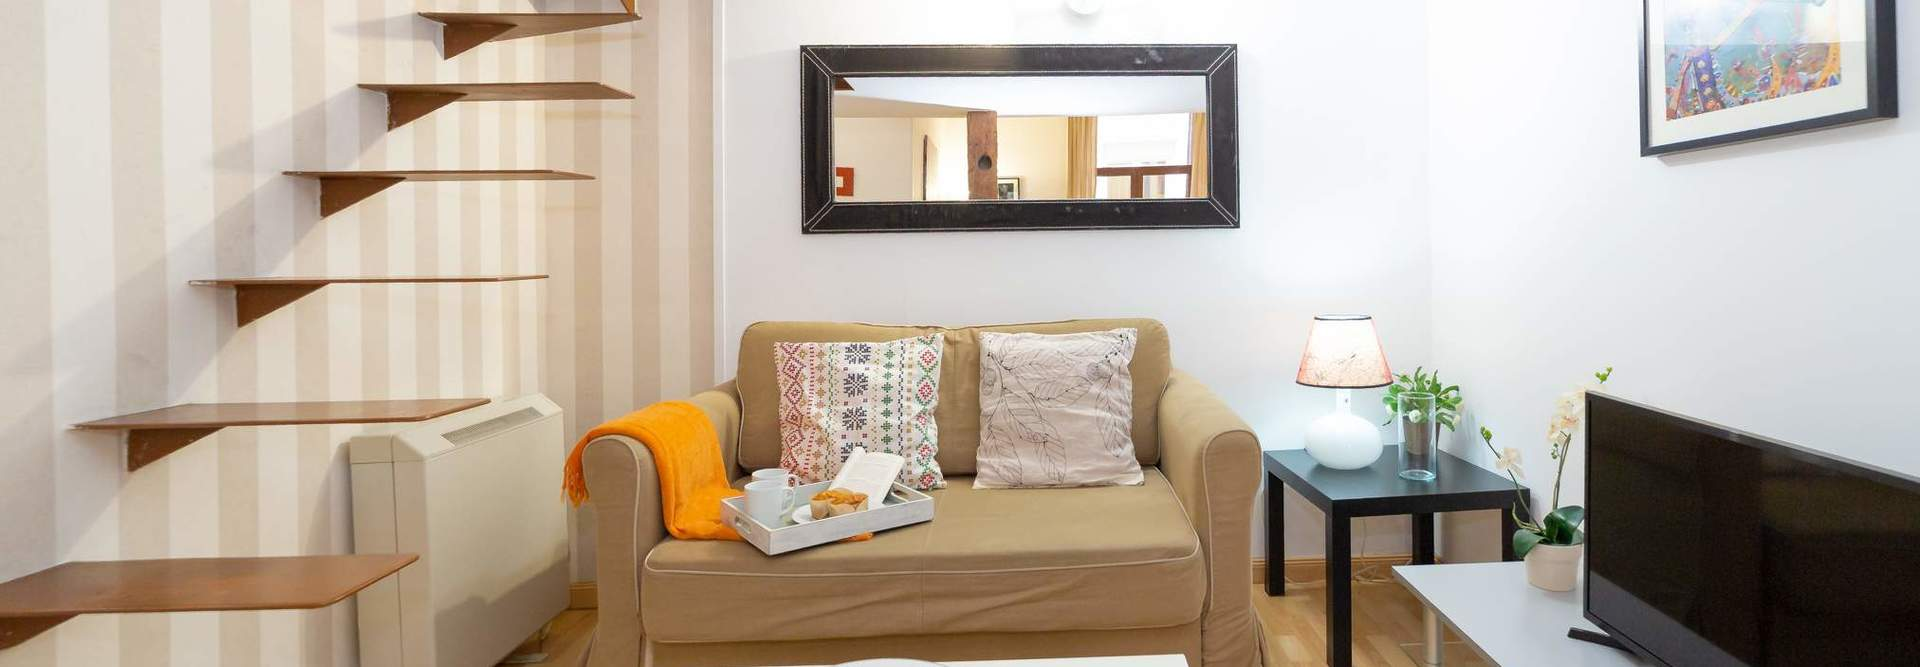 Home alquiler apartamentos madrid mad4rent 27